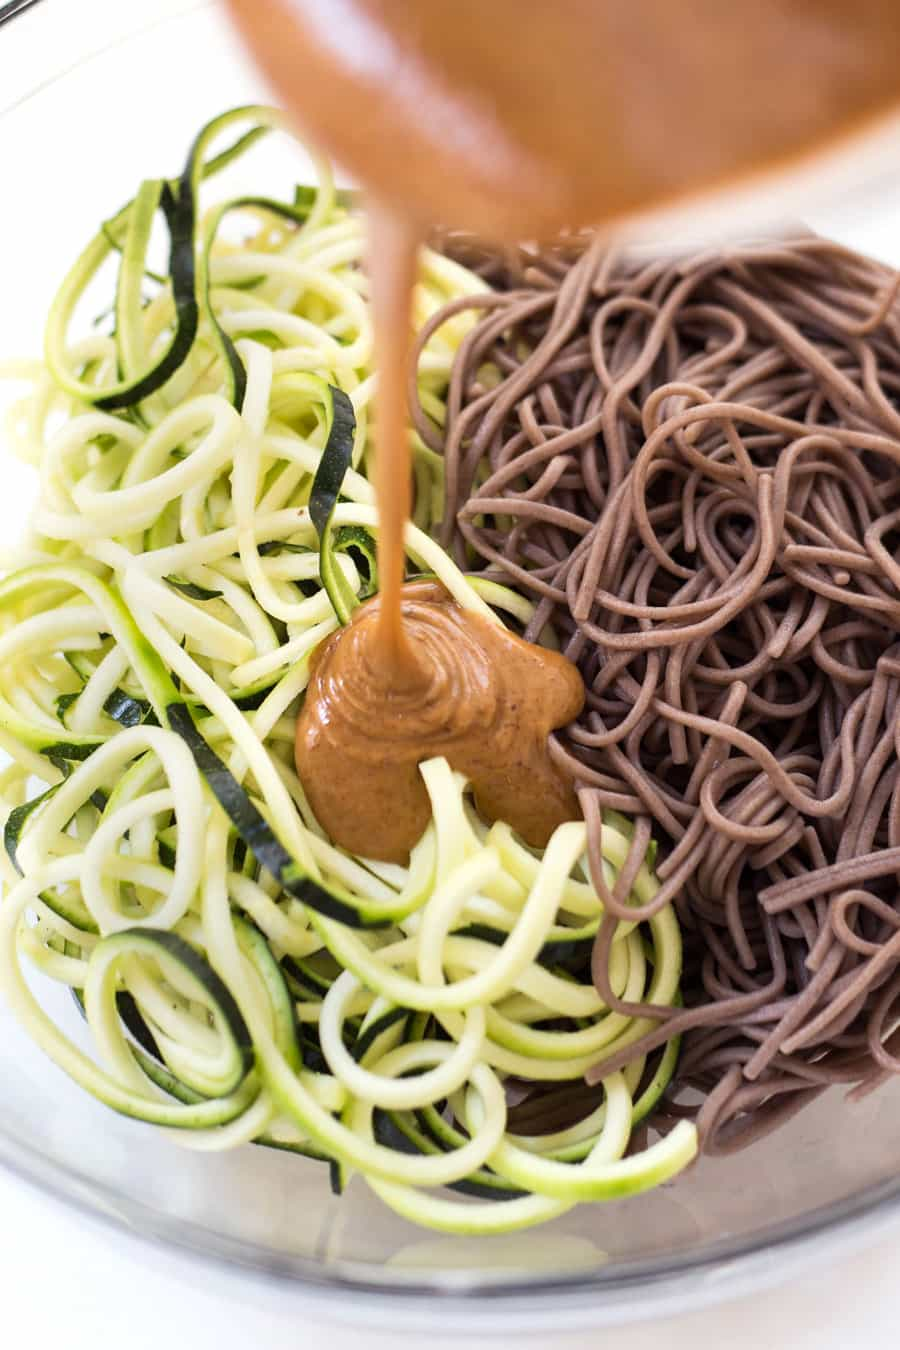 Almond-Sesame Soba Zoodles with quick pickled veggies and the creamiest almond butter sauce ever!